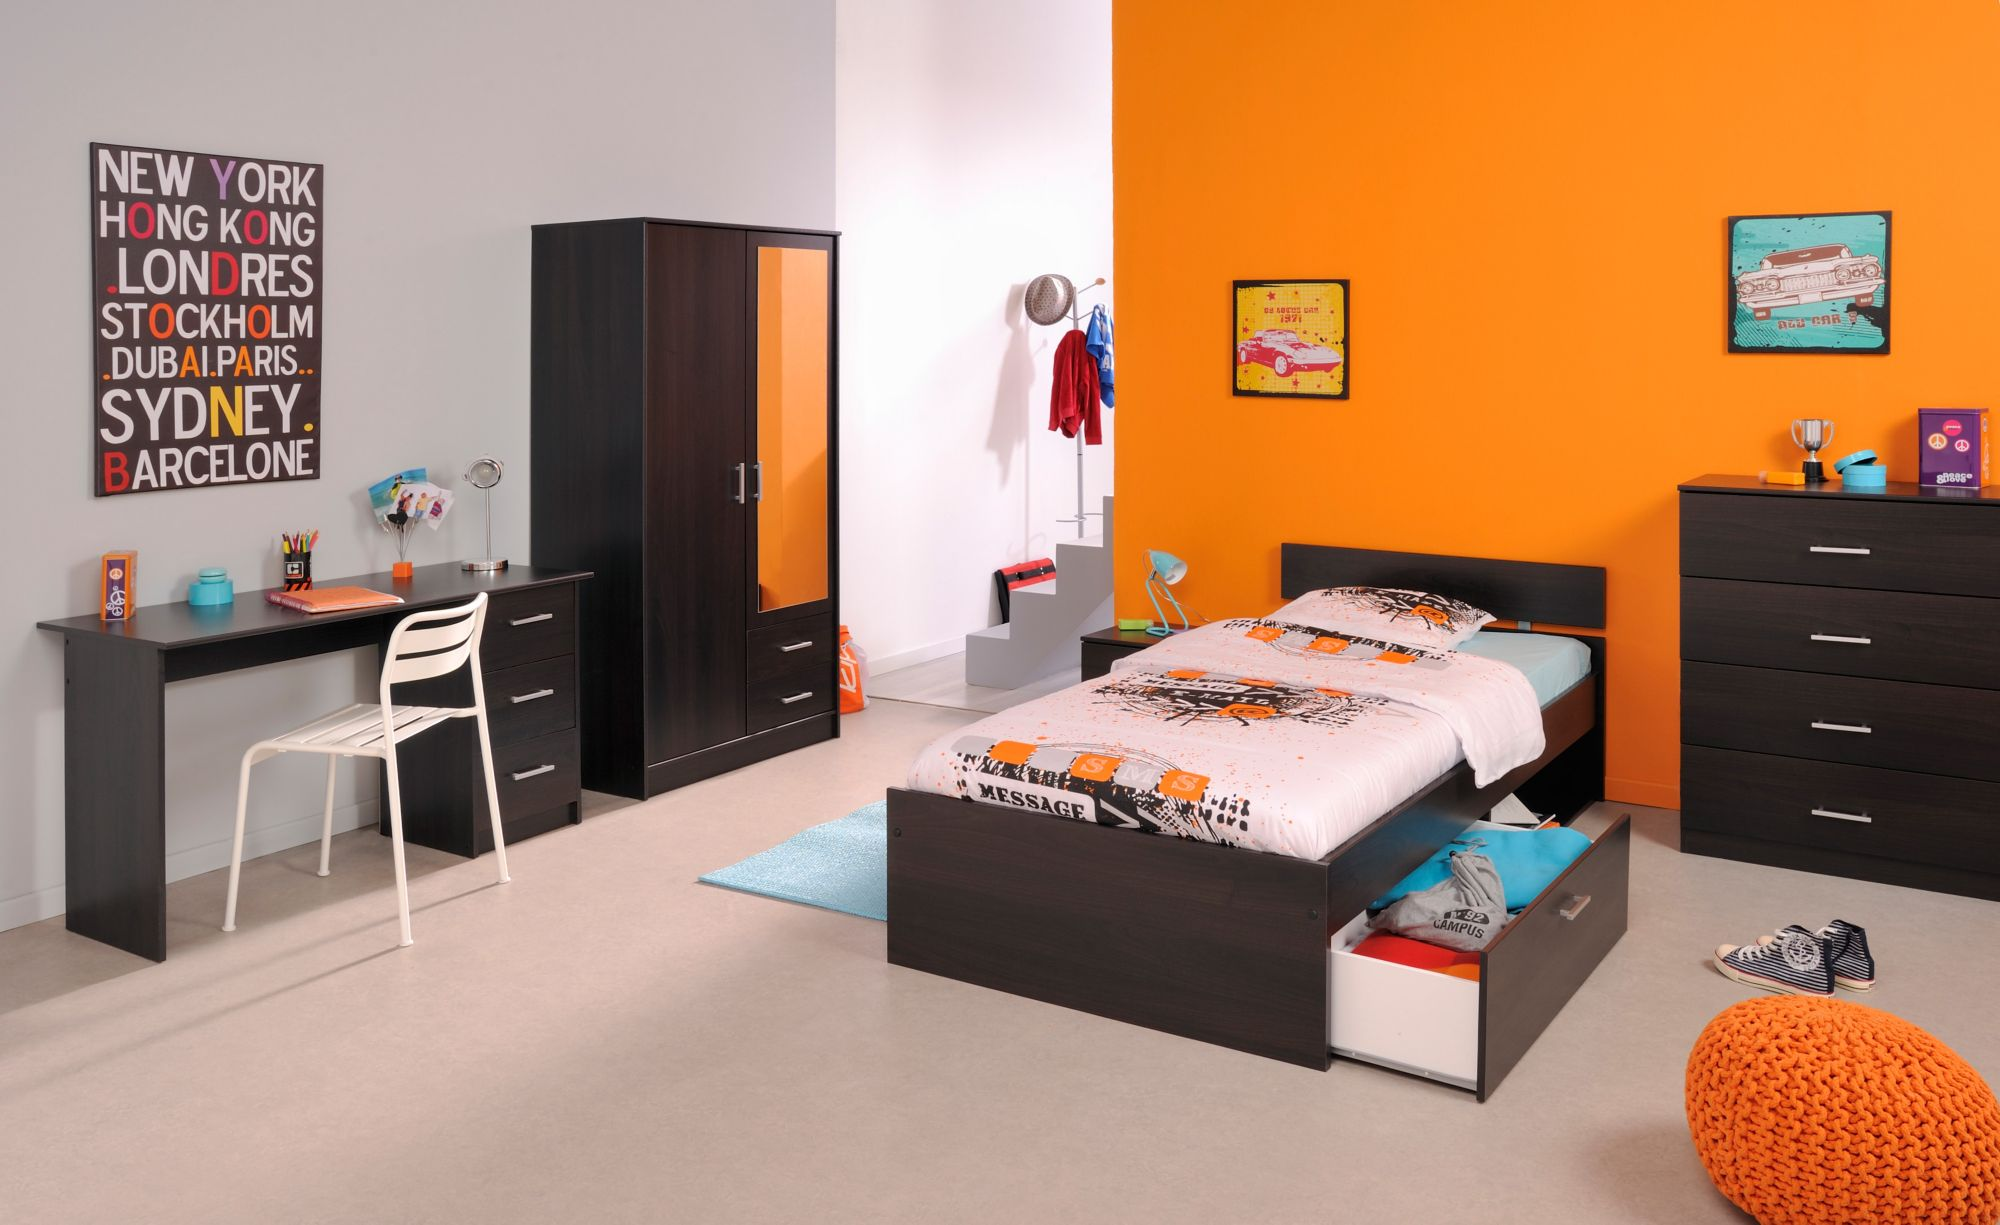 parisot jugendzimmer set 4 oder 5 tlg schwab versand komplett kinderzimmer. Black Bedroom Furniture Sets. Home Design Ideas